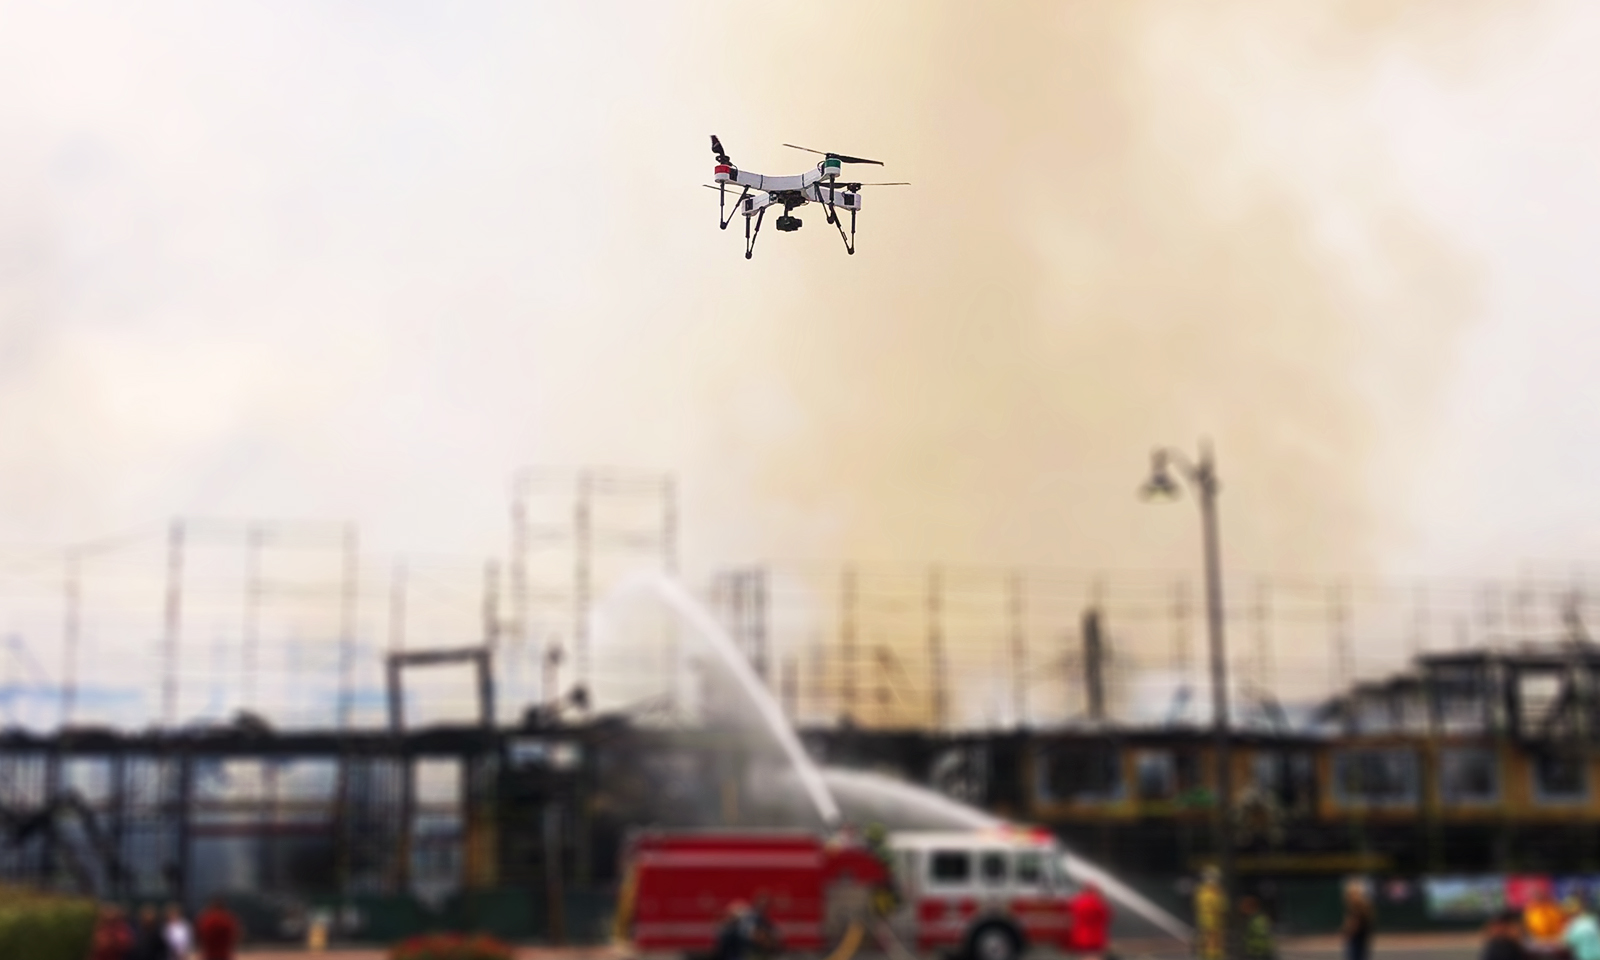 Drone flying in front of firefighters extinguishing a building fire